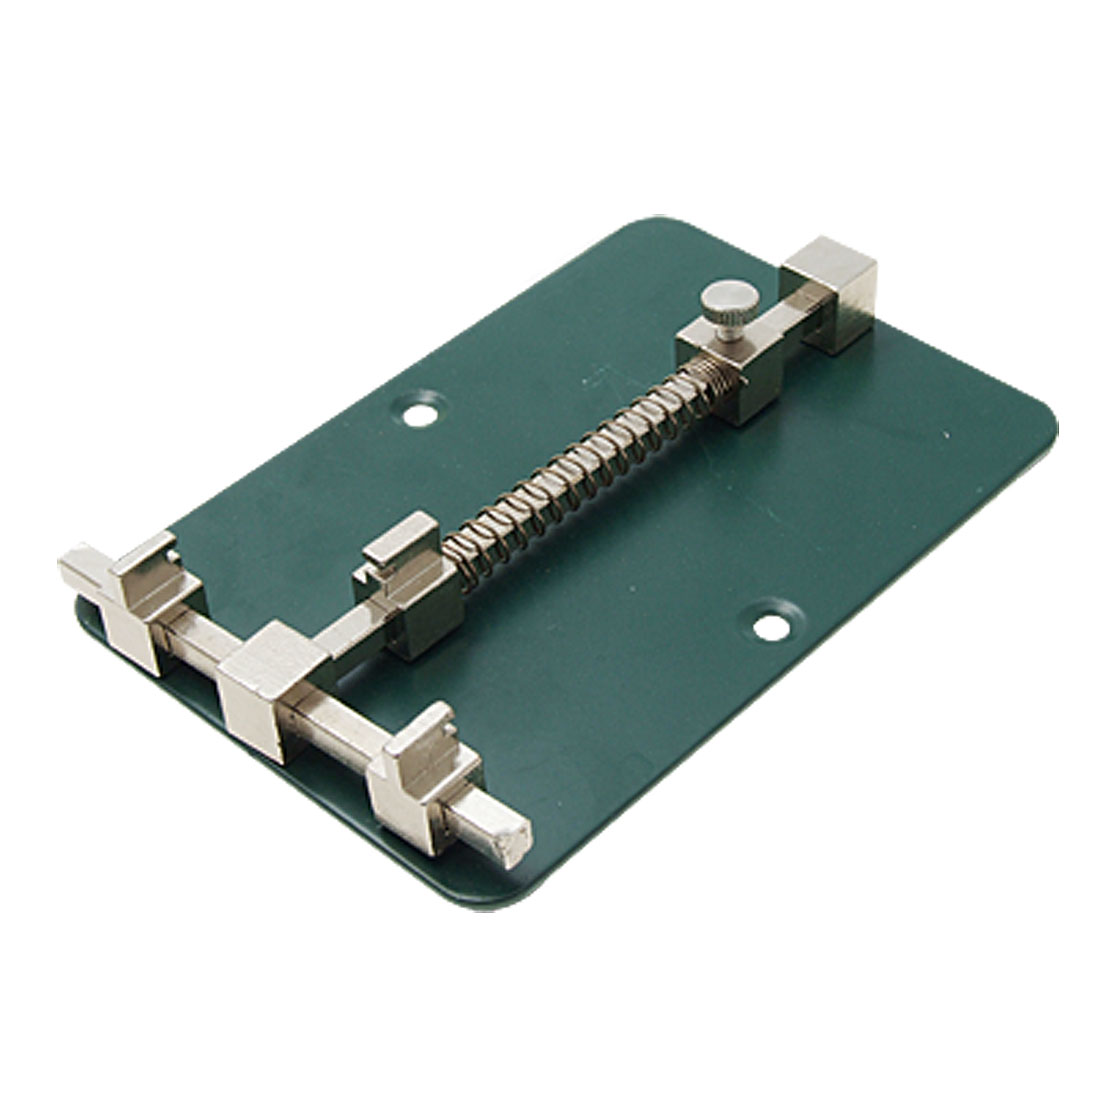 PCB Holder Mobile Phone Repairing Repair Tool